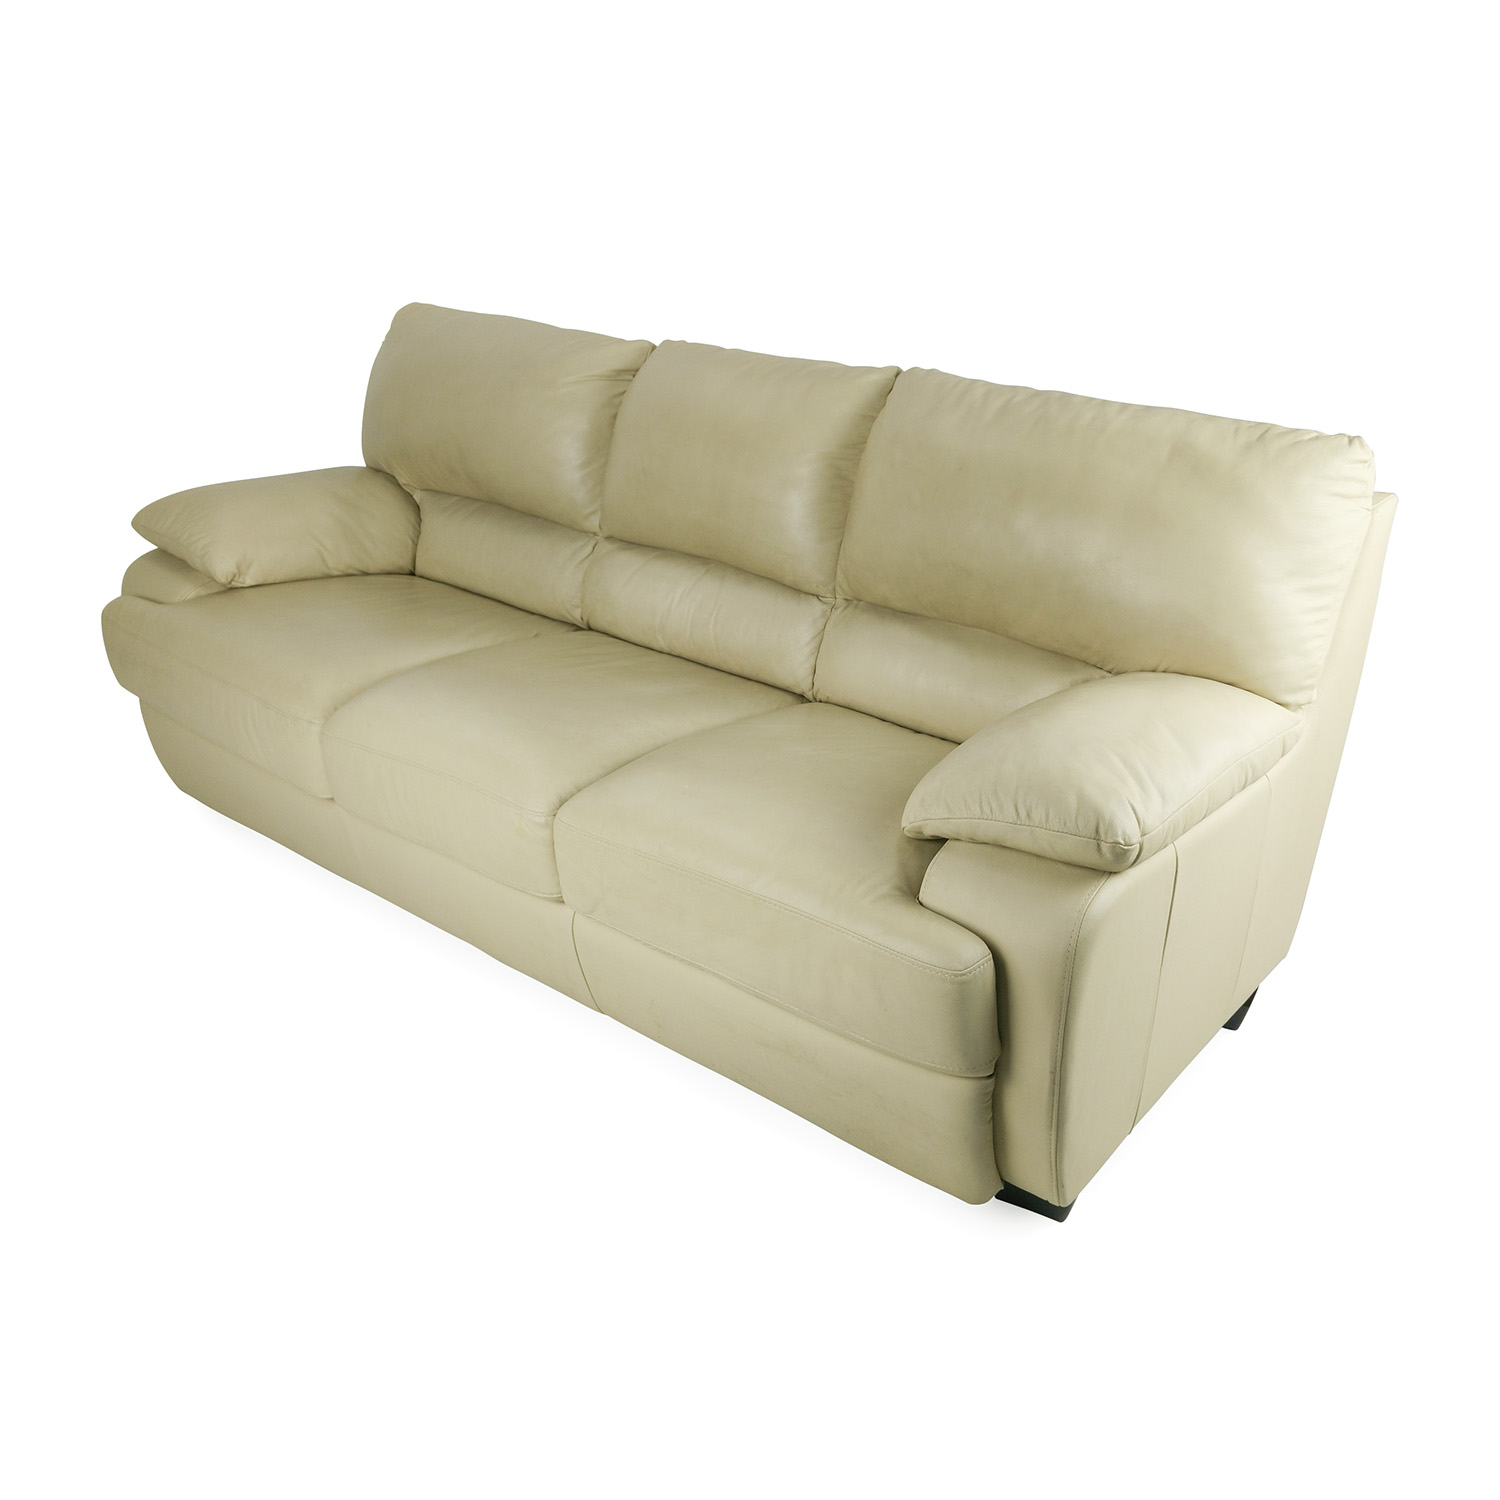 Buying A Second Hand Sofa 75 Off Tan Leather Couch Sofas